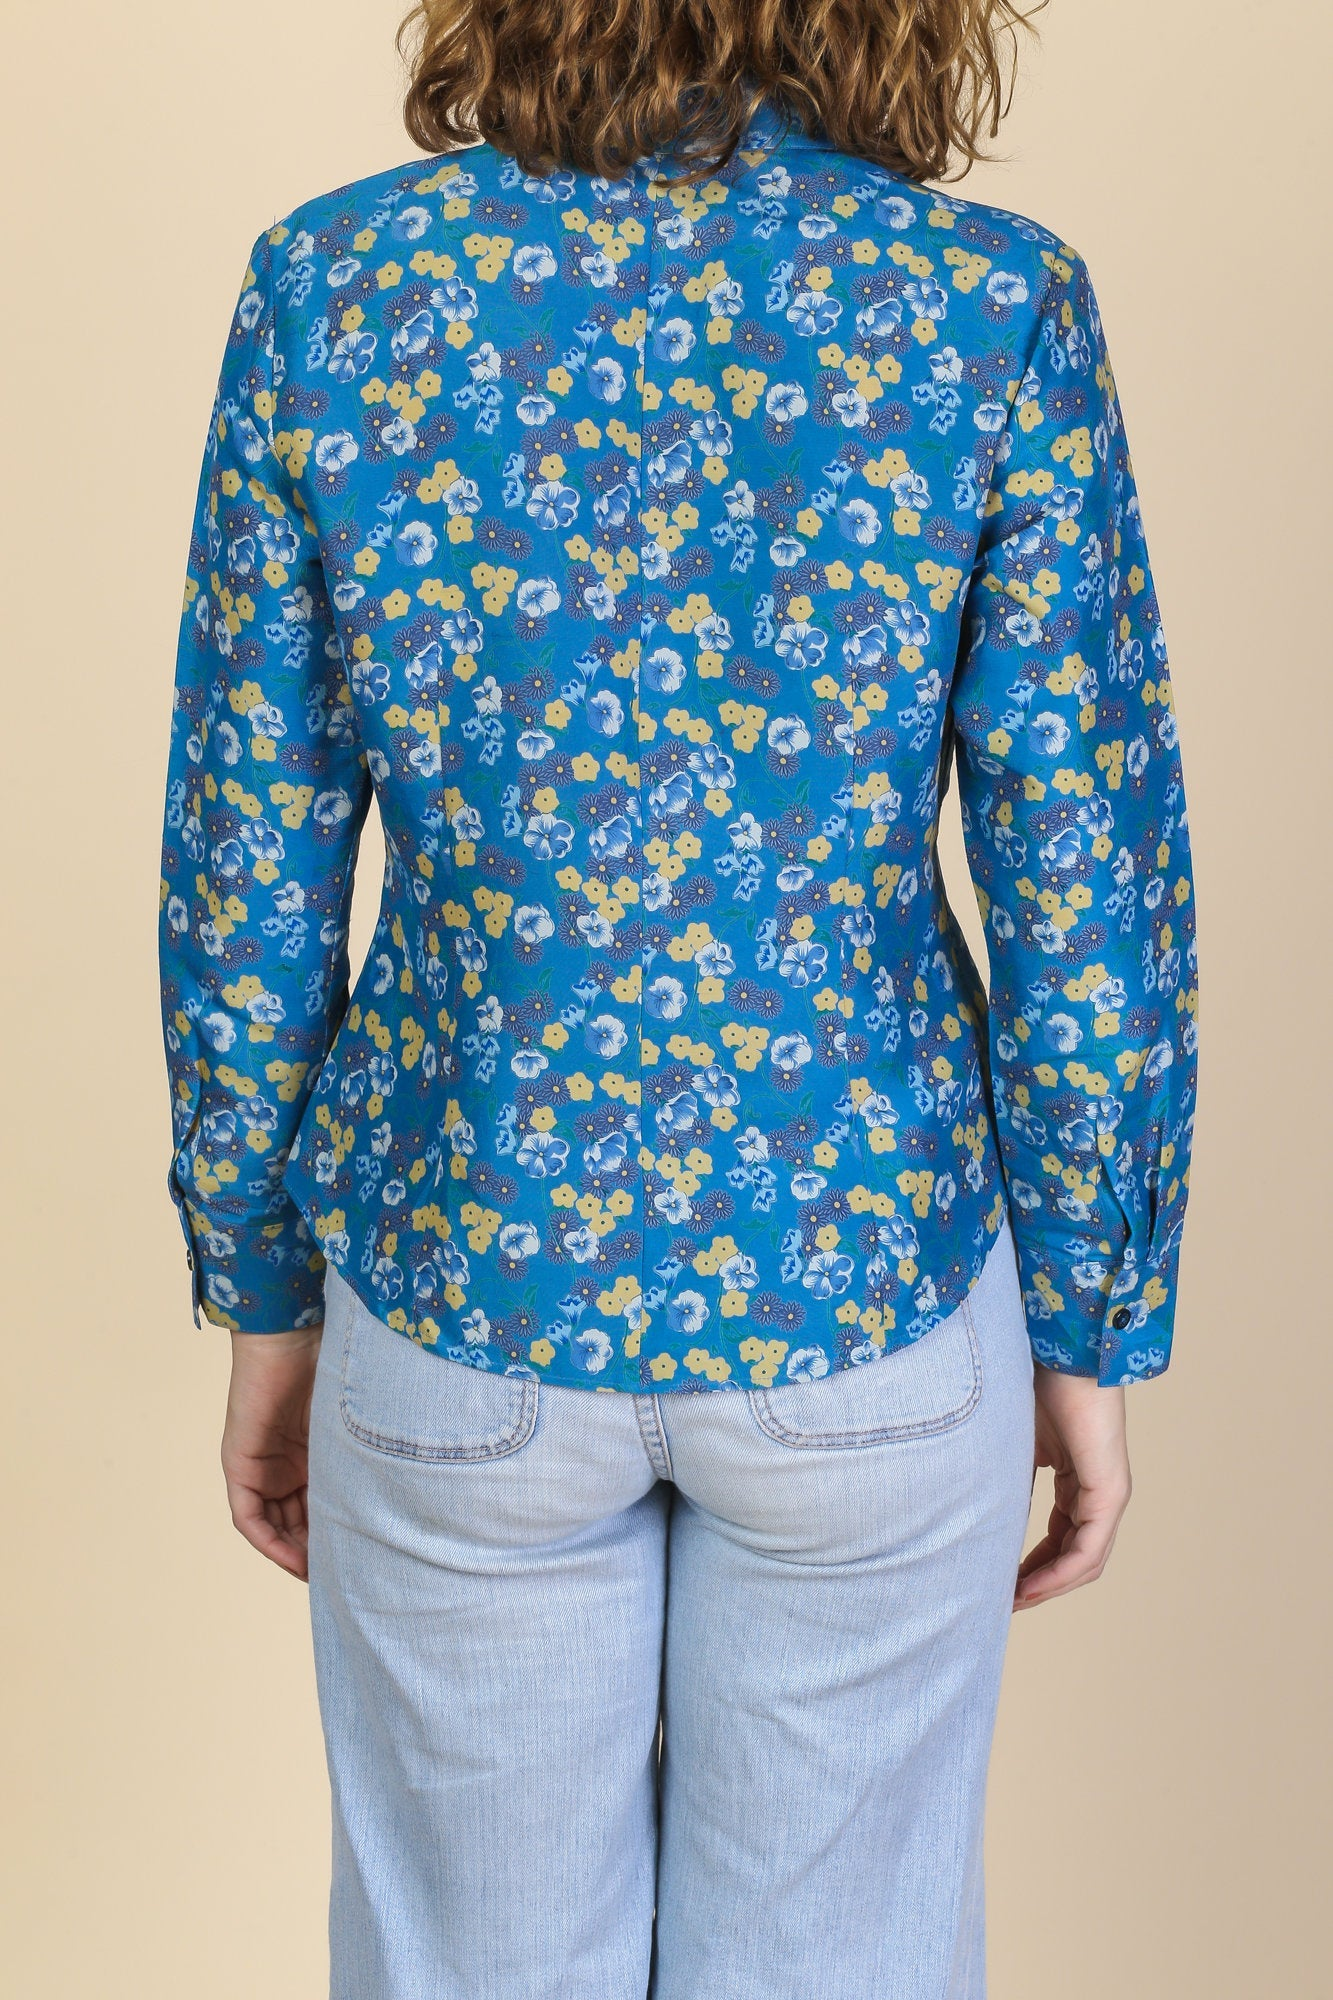 70s Boho Floral Collared Shirt - Small